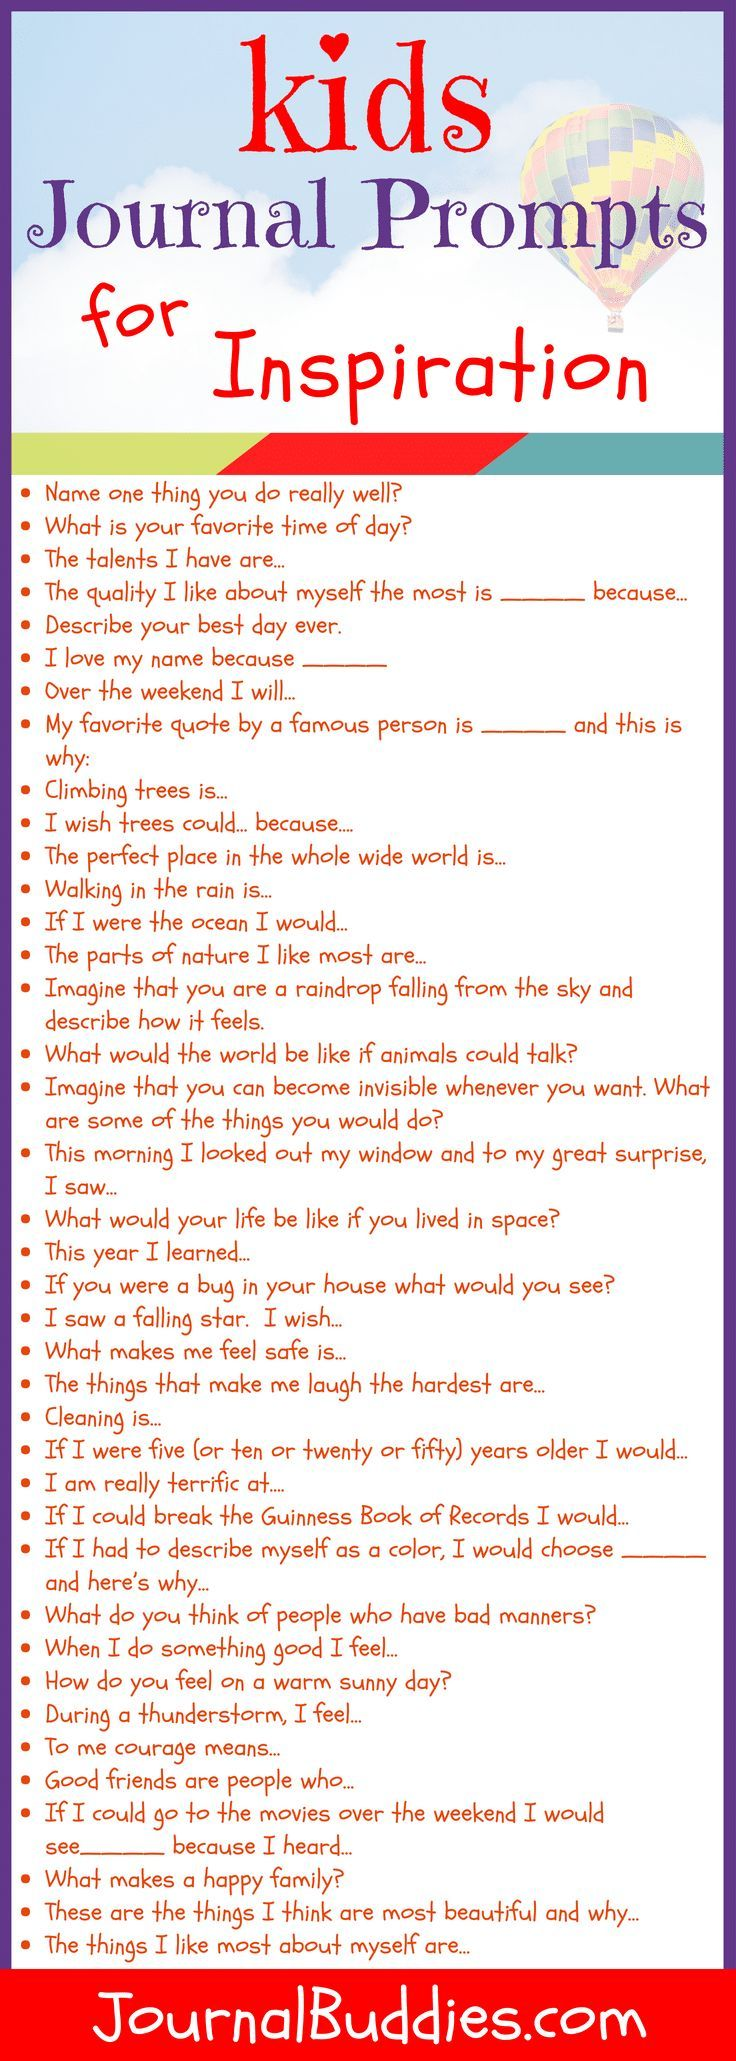 Writing ideas & journal prompts for kids homeschool Journal Prompts For Kids, Journal Topics, Writing Prompts For Kids, Kids Writing, Teaching Writing, Writing Activities, Writing Tips, Journal Ideas, Kindergarten Writing Prompts